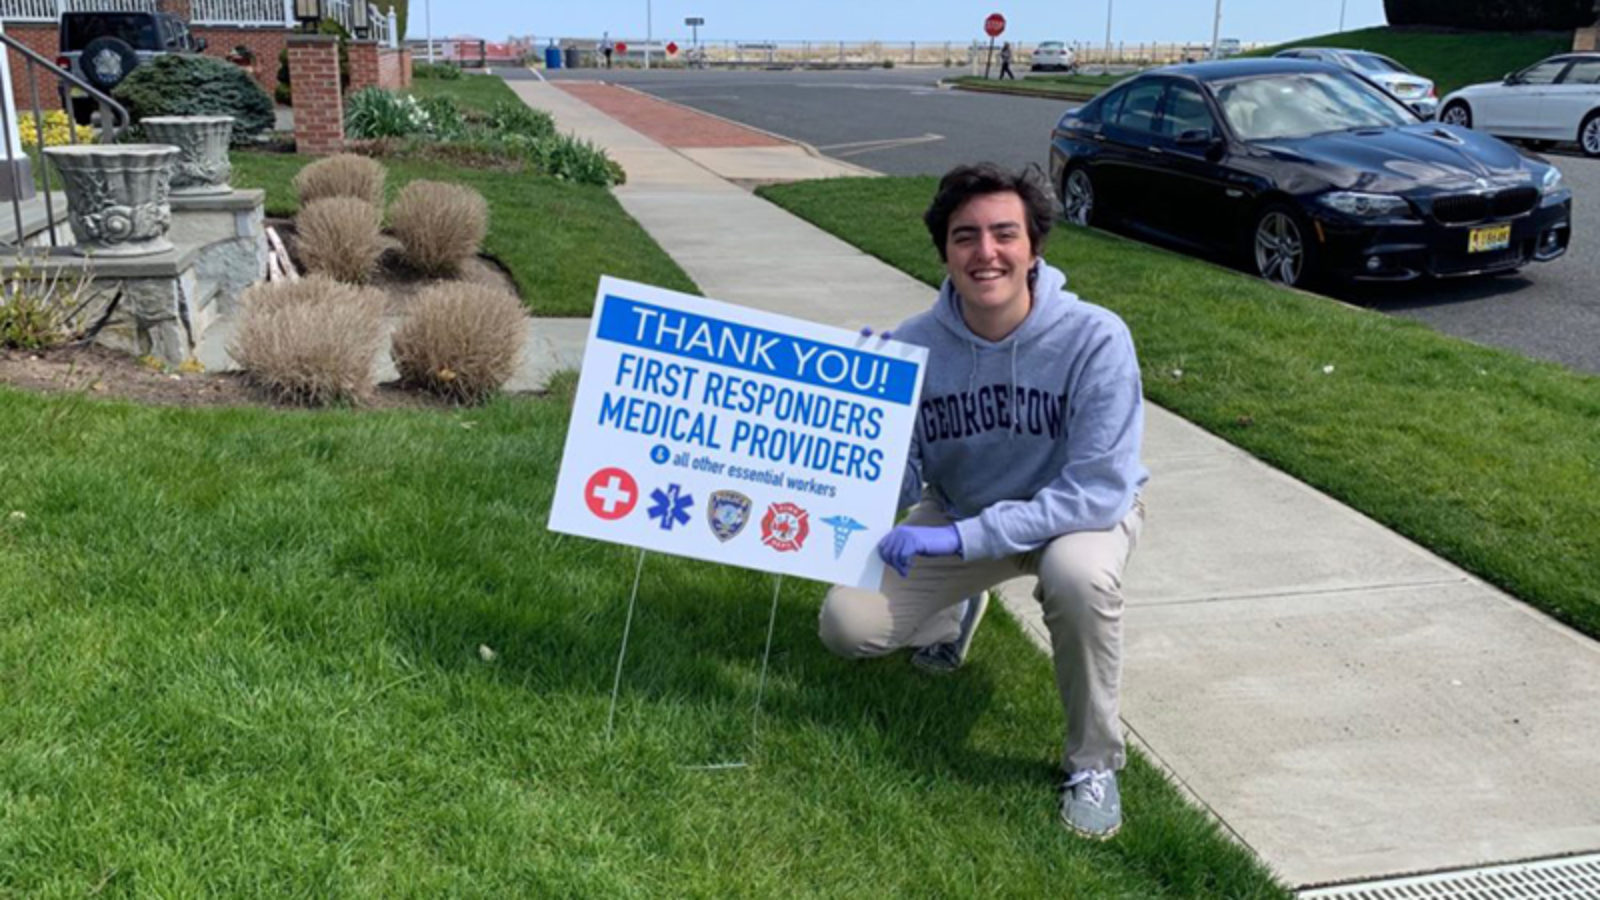 Liam Marshall squatting on a front lawn with a sign stuck in the lawn reading